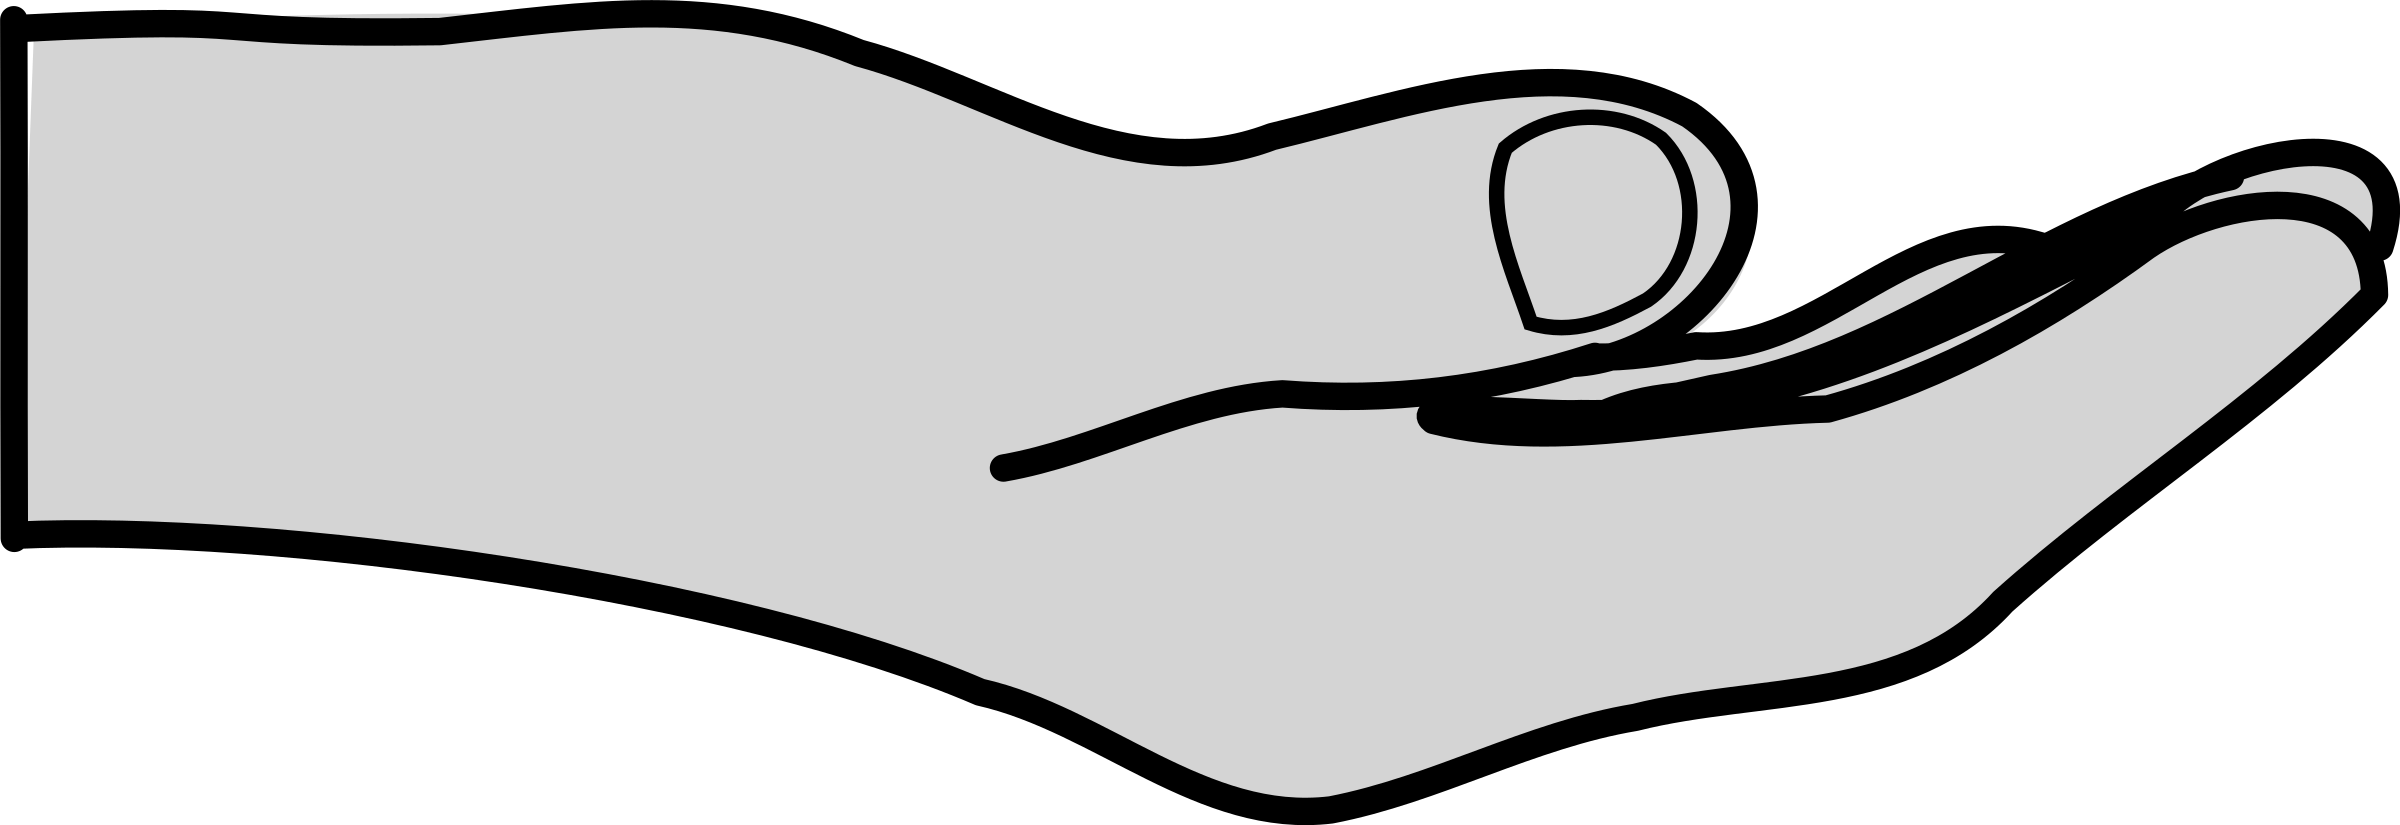 BIG IMAGE (PNG) - Open Giving Hands PNG